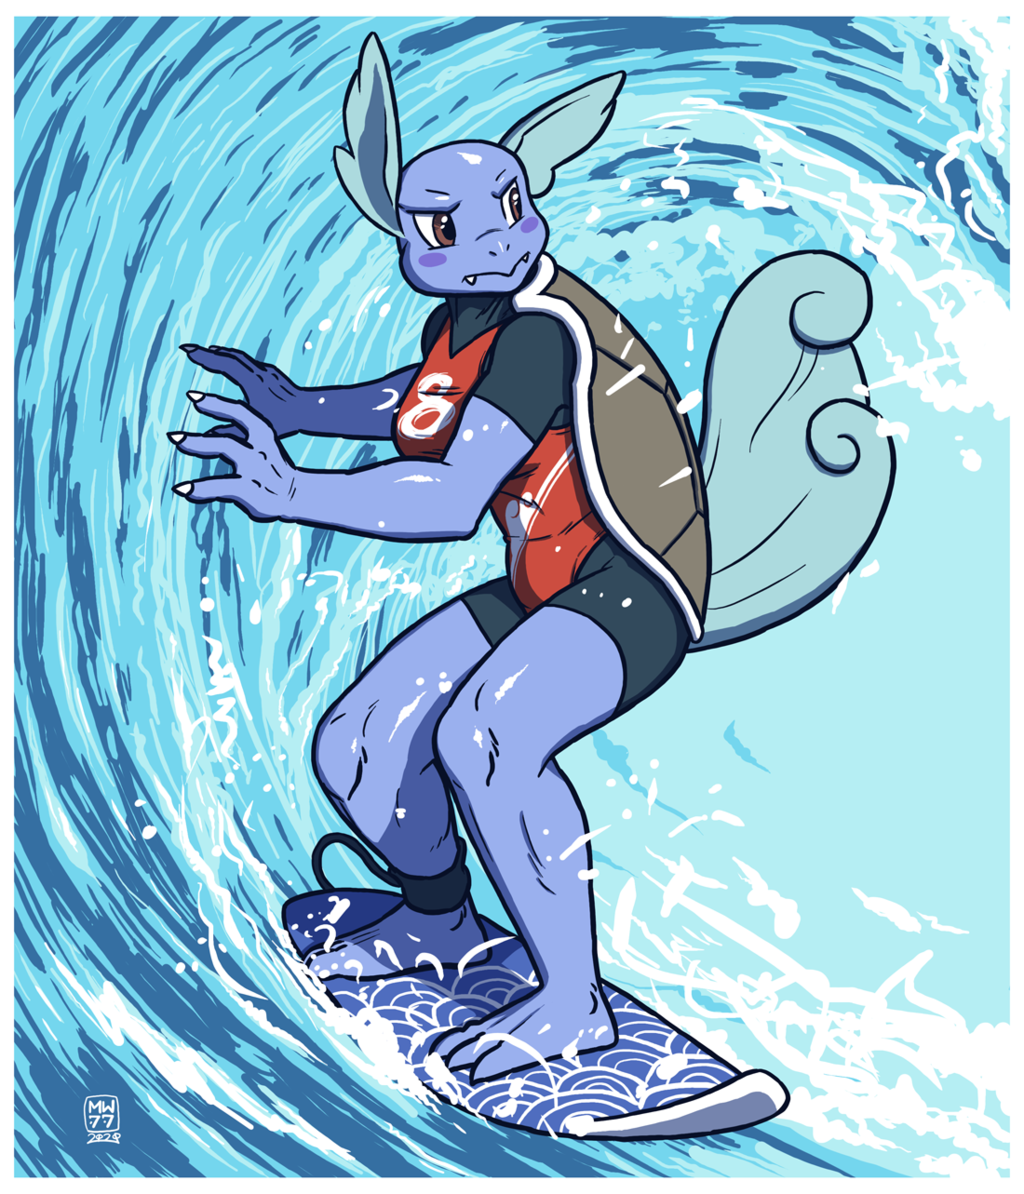 WARTORTLE : Go with the flow